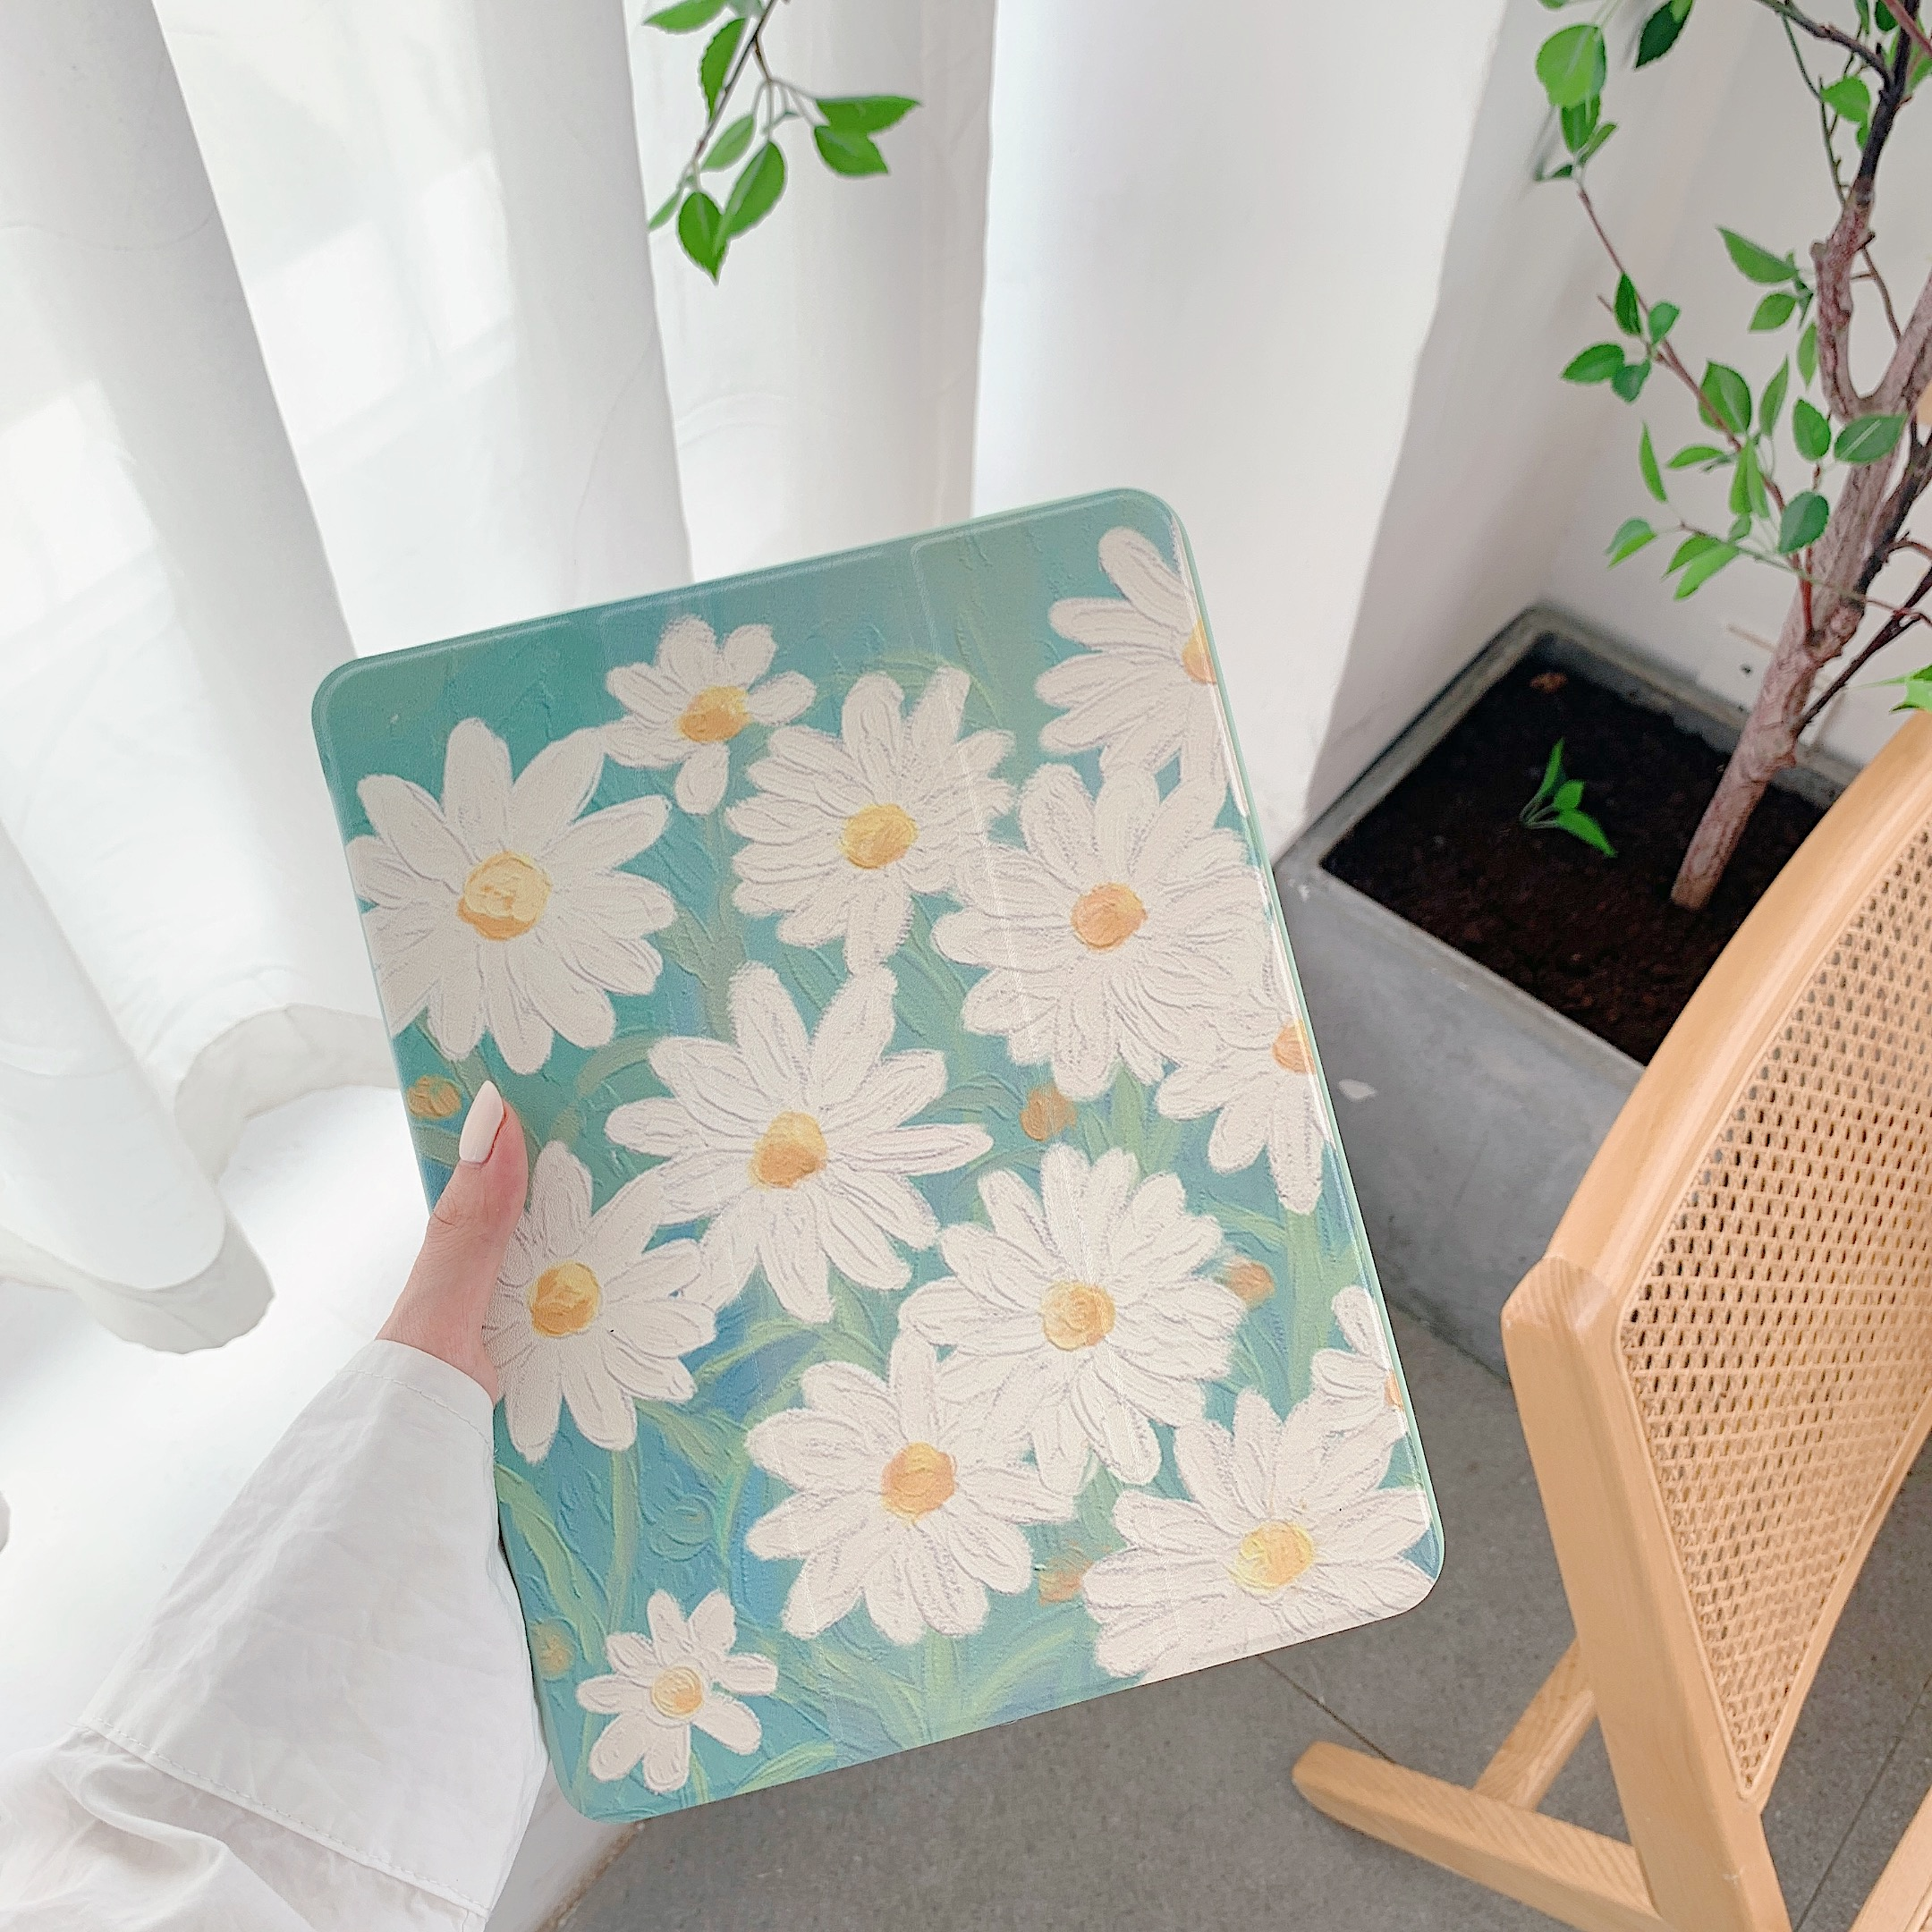 Daisy Flower  Case For Ipad Pro 2020 Air 3 Back Cover 1